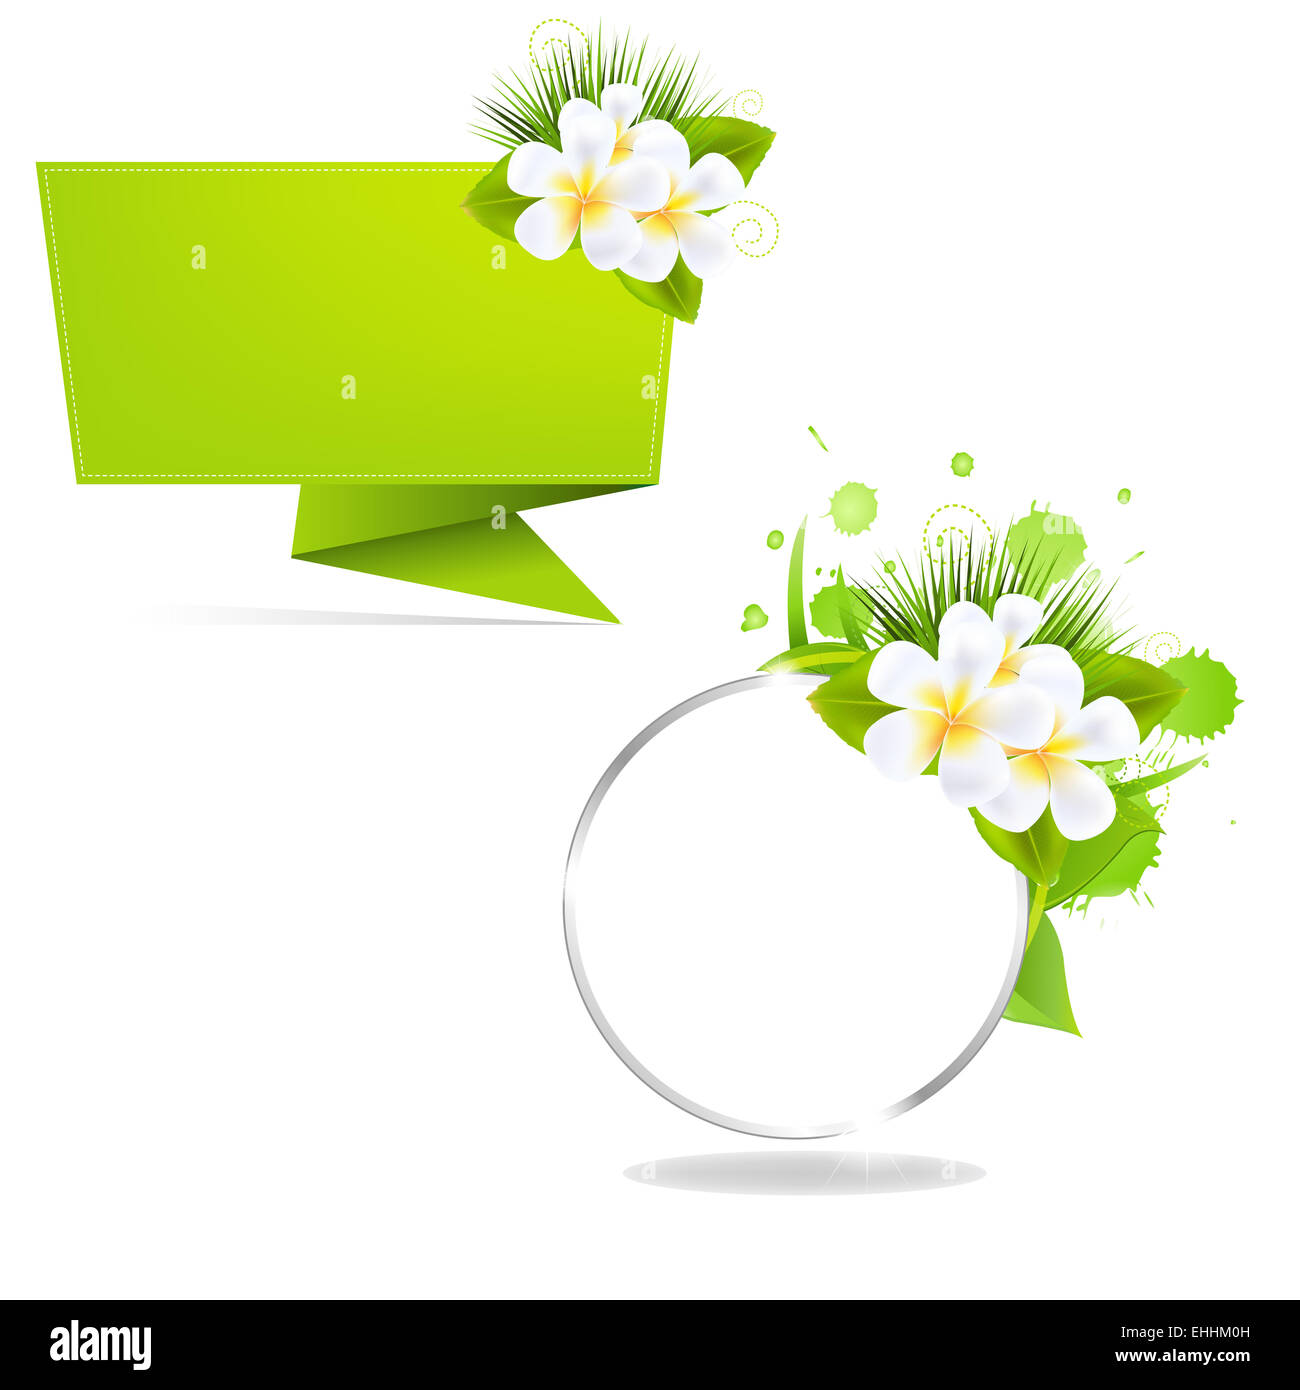 Origami Frame Stock Photos & Origami Frame Stock Images - Alamy